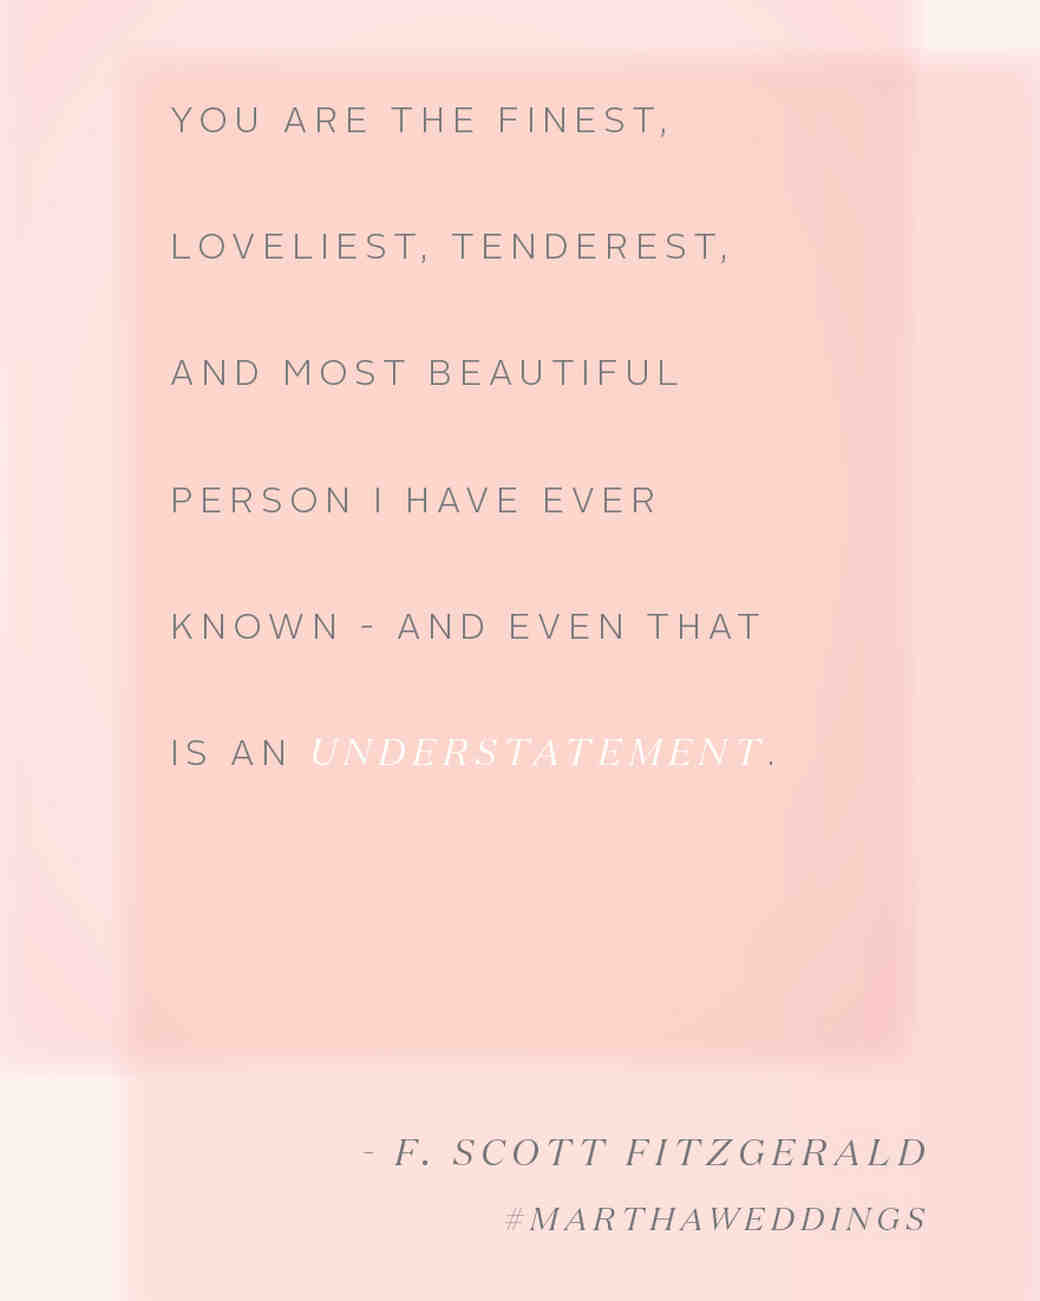 The Best Love Quotes Of All Time Martha Stewart Weddings